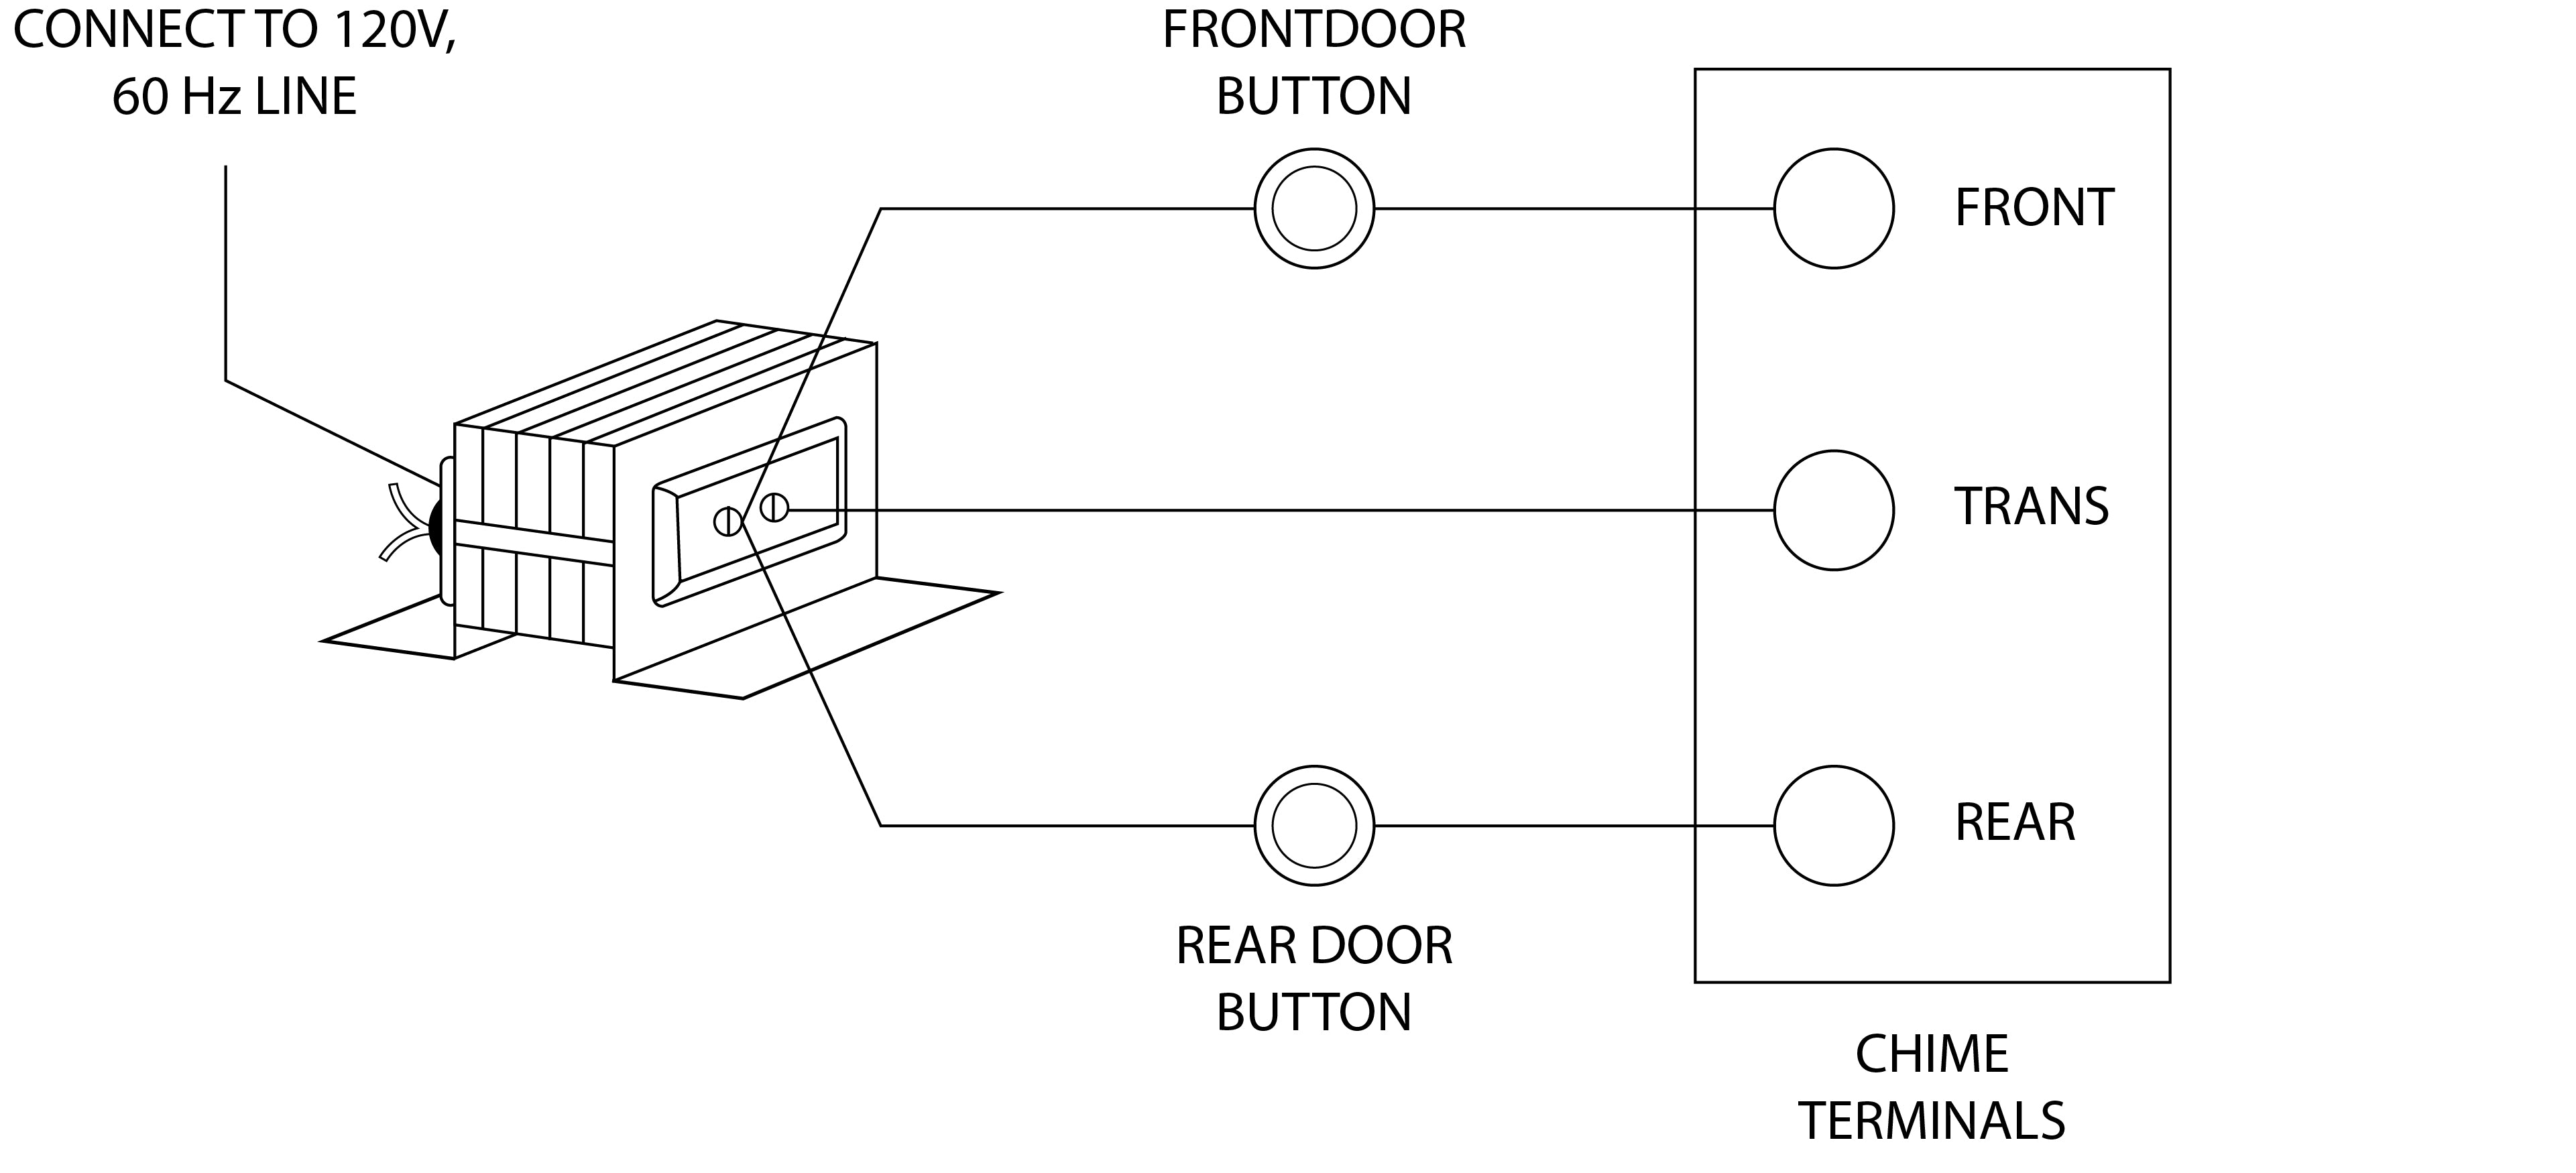 wiring diagram ring doorbell wiring diagram doorbell transformer diagram \u2022 wiring Doorbell Transformer Wiring Diagram at gsmportal.co